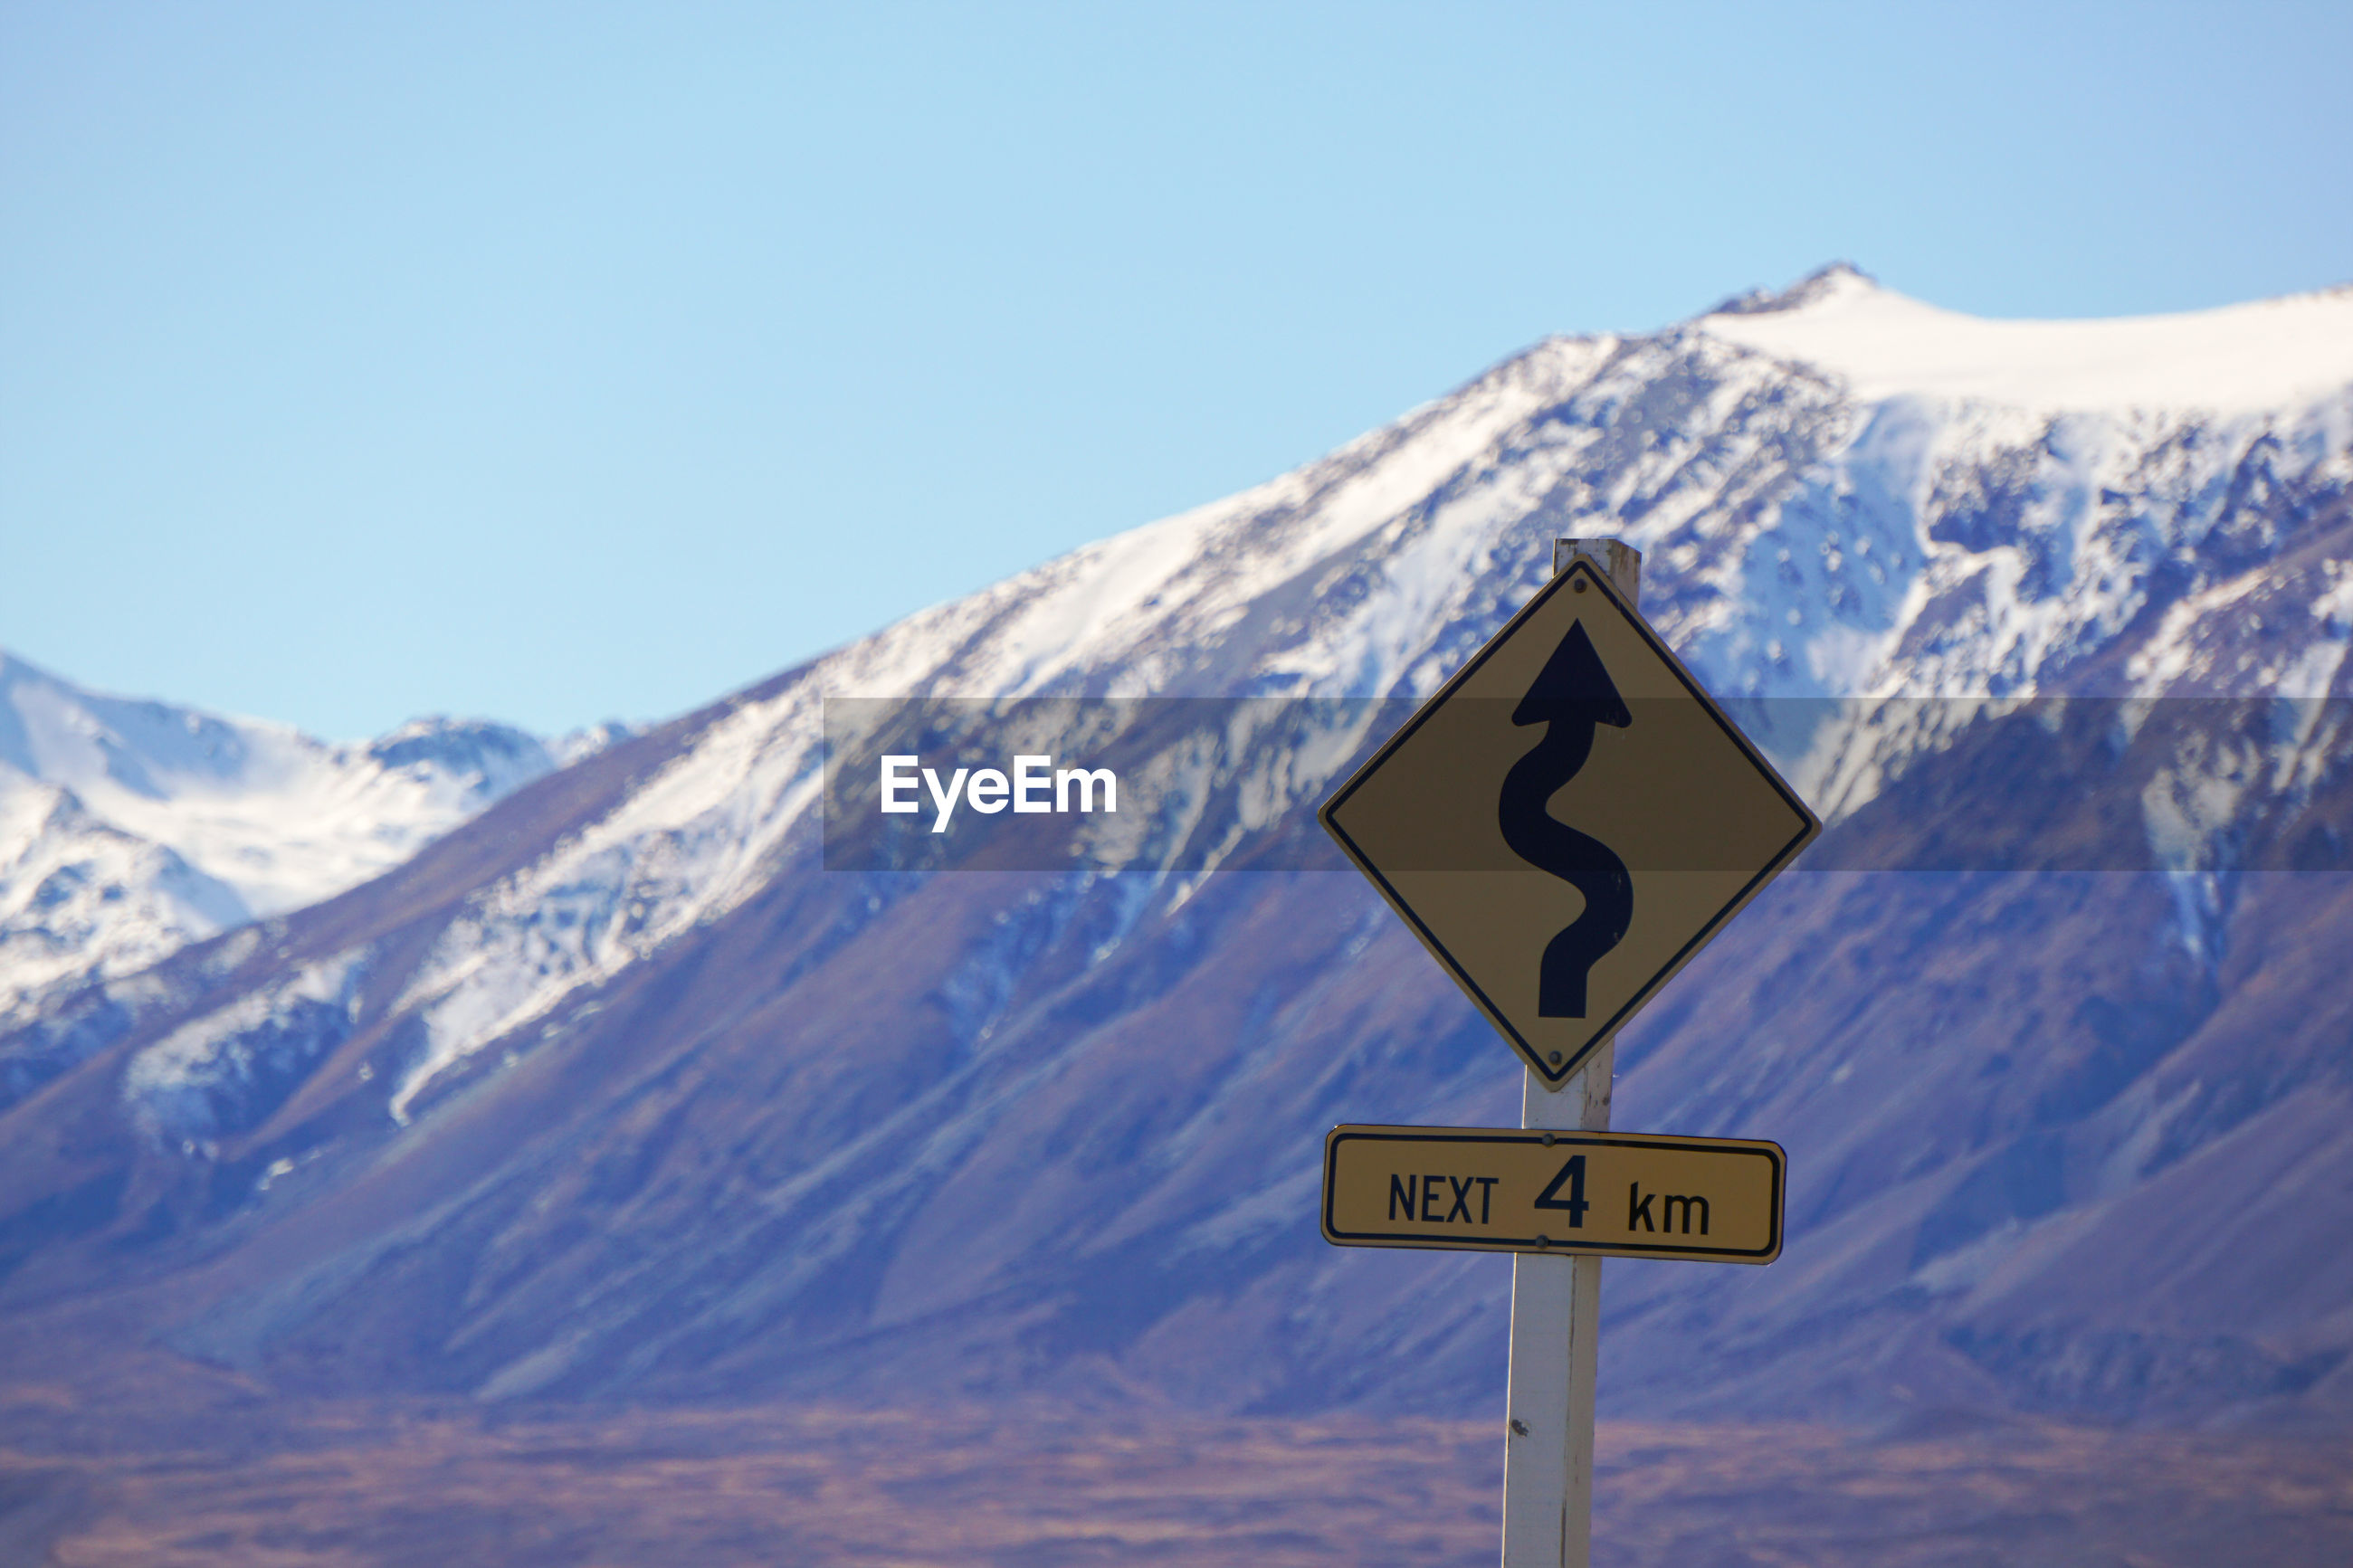 ROAD SIGN BY SNOWCAPPED MOUNTAIN AGAINST SKY